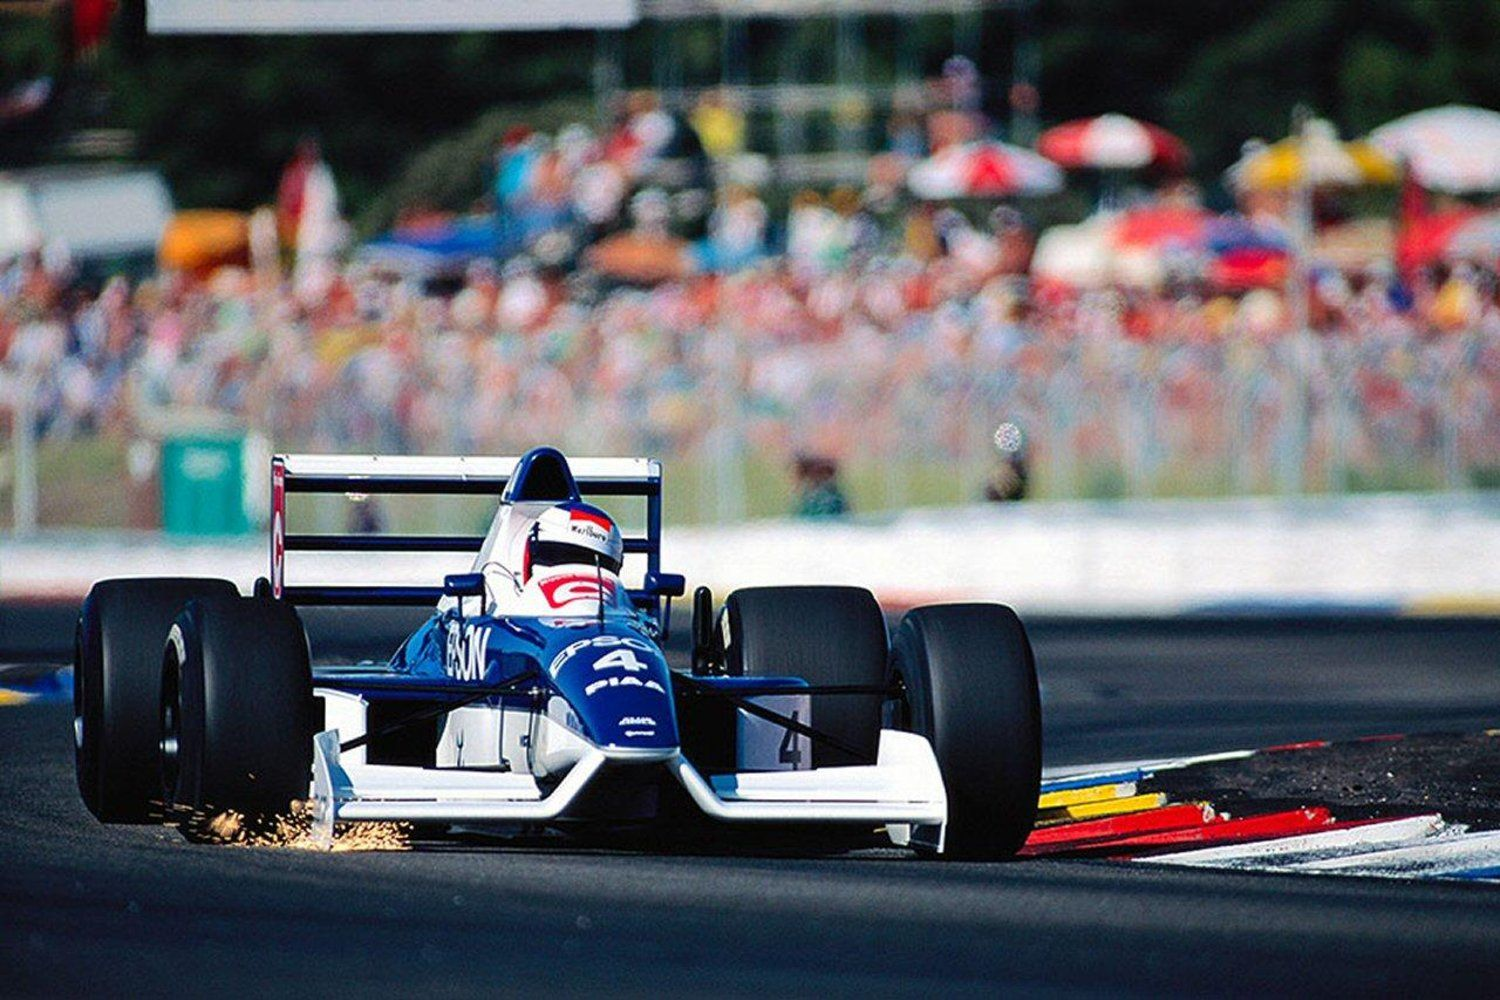 Hot Topics Who's the most underrated F1 driver? Formule